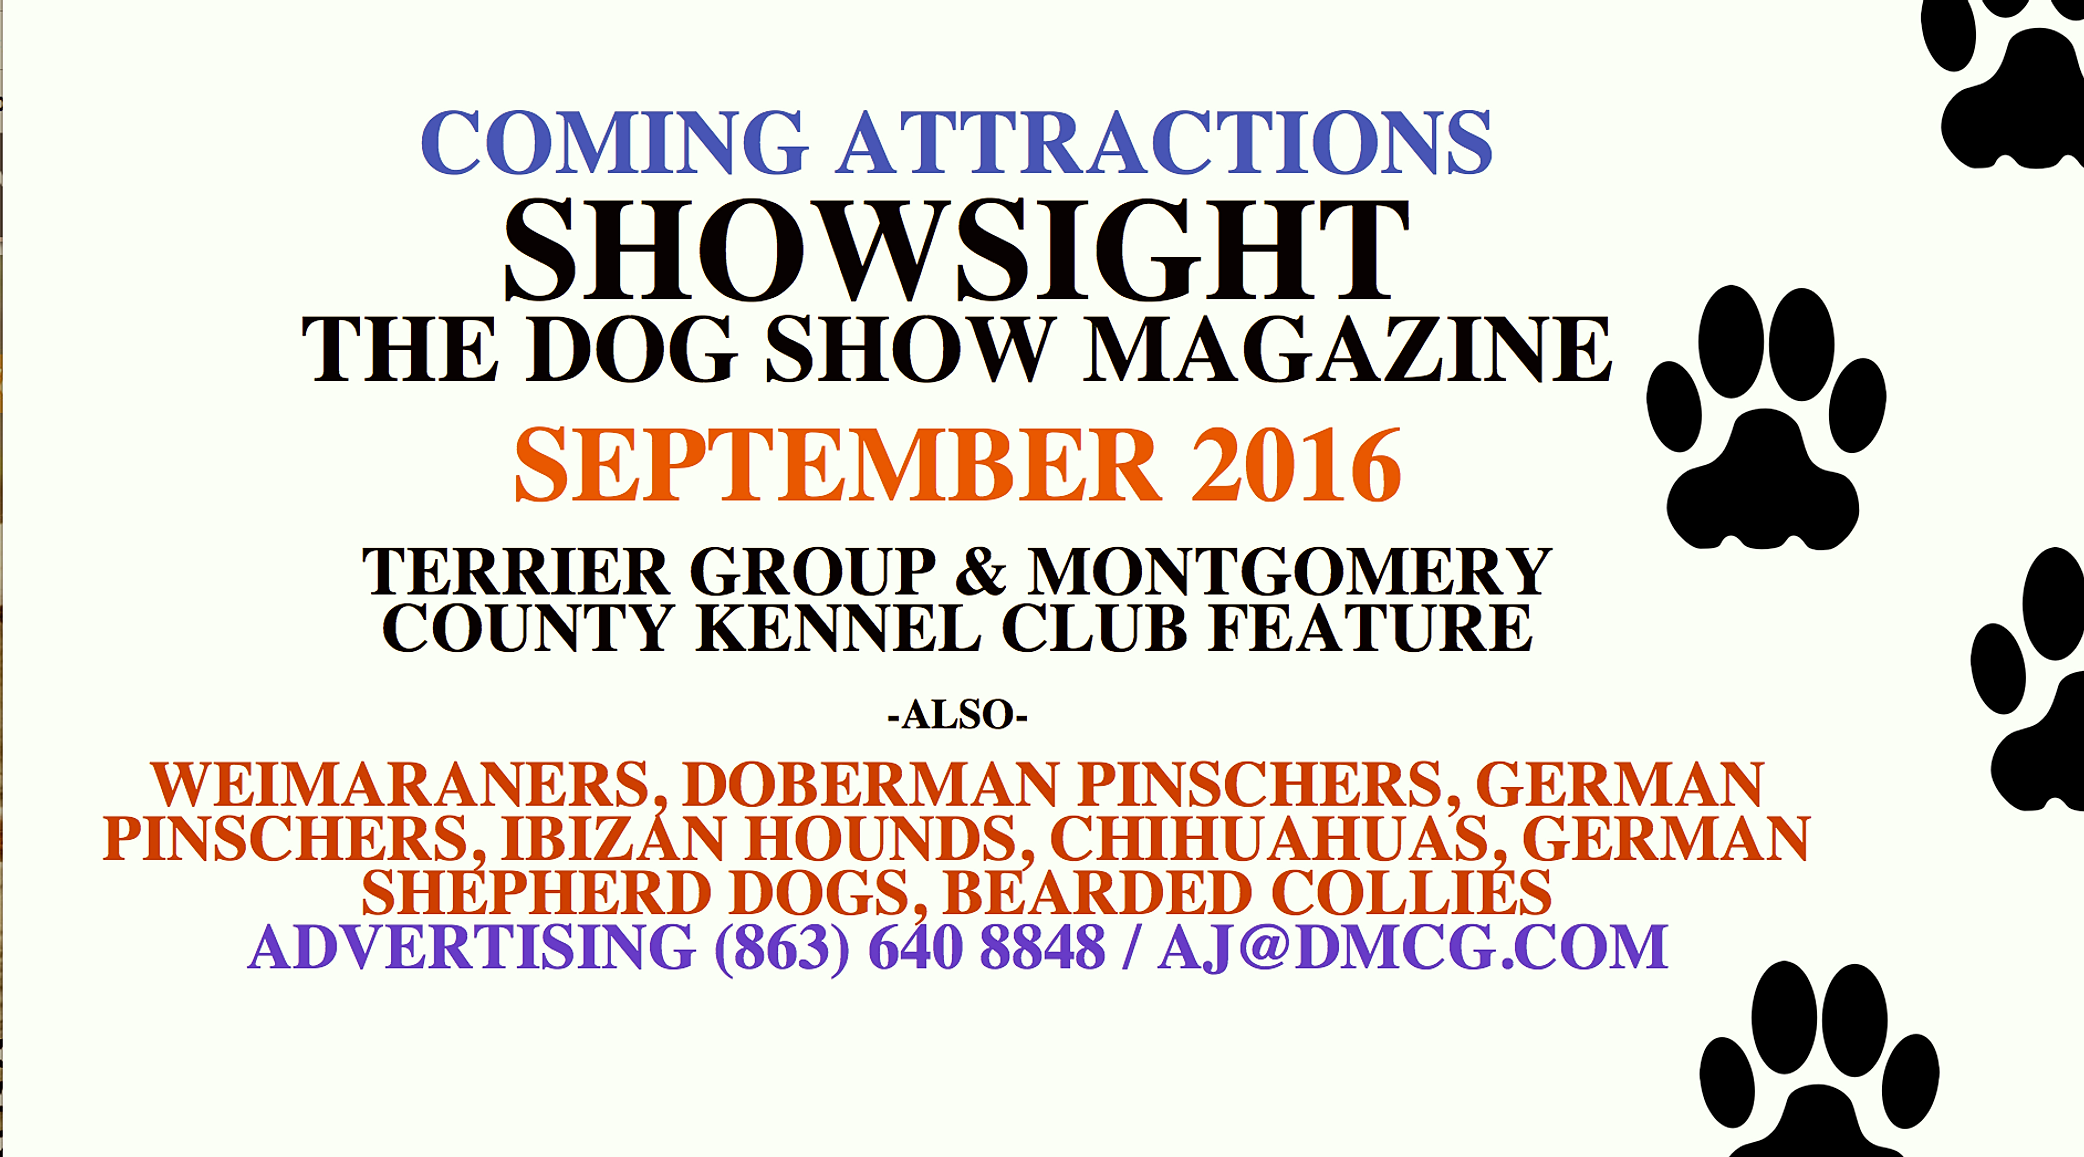 COMING ATTRACTIONS - SEPTEMBER 2016